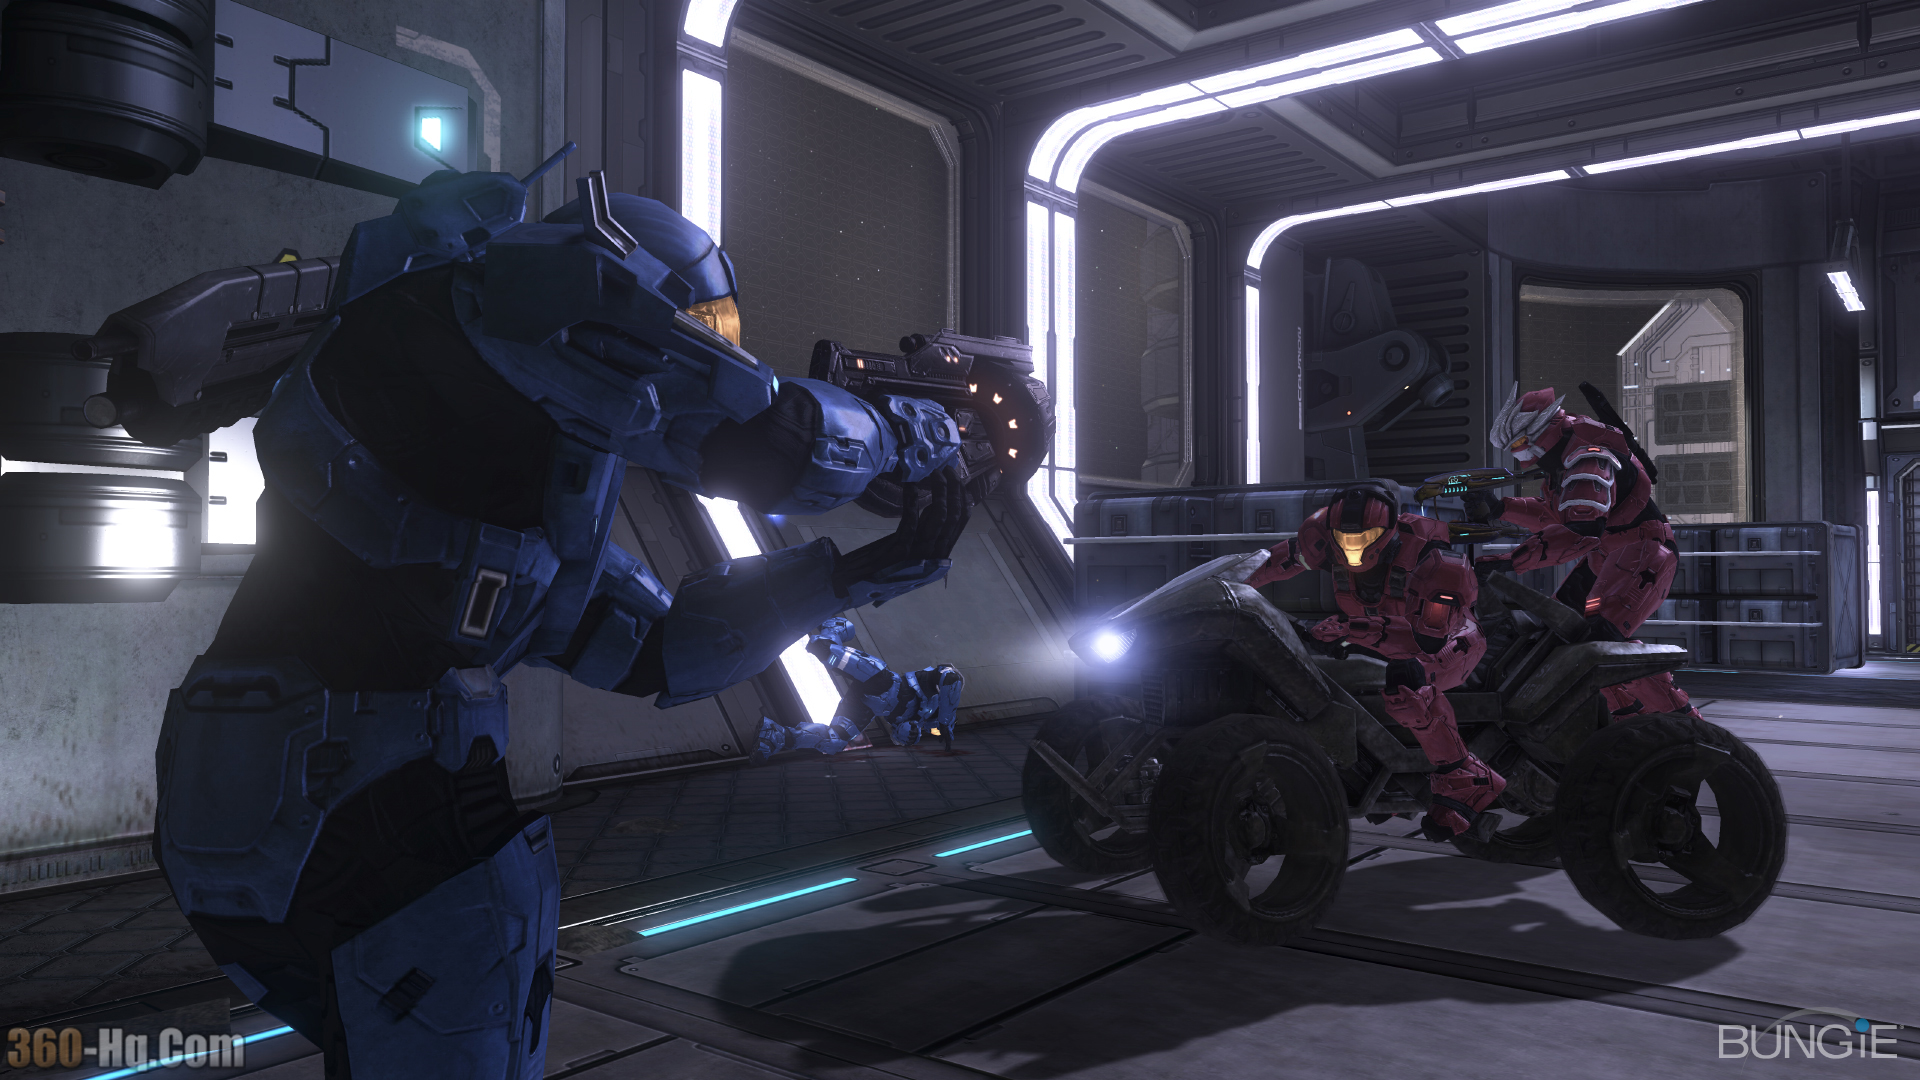 Halo 3 Screenshot 5095